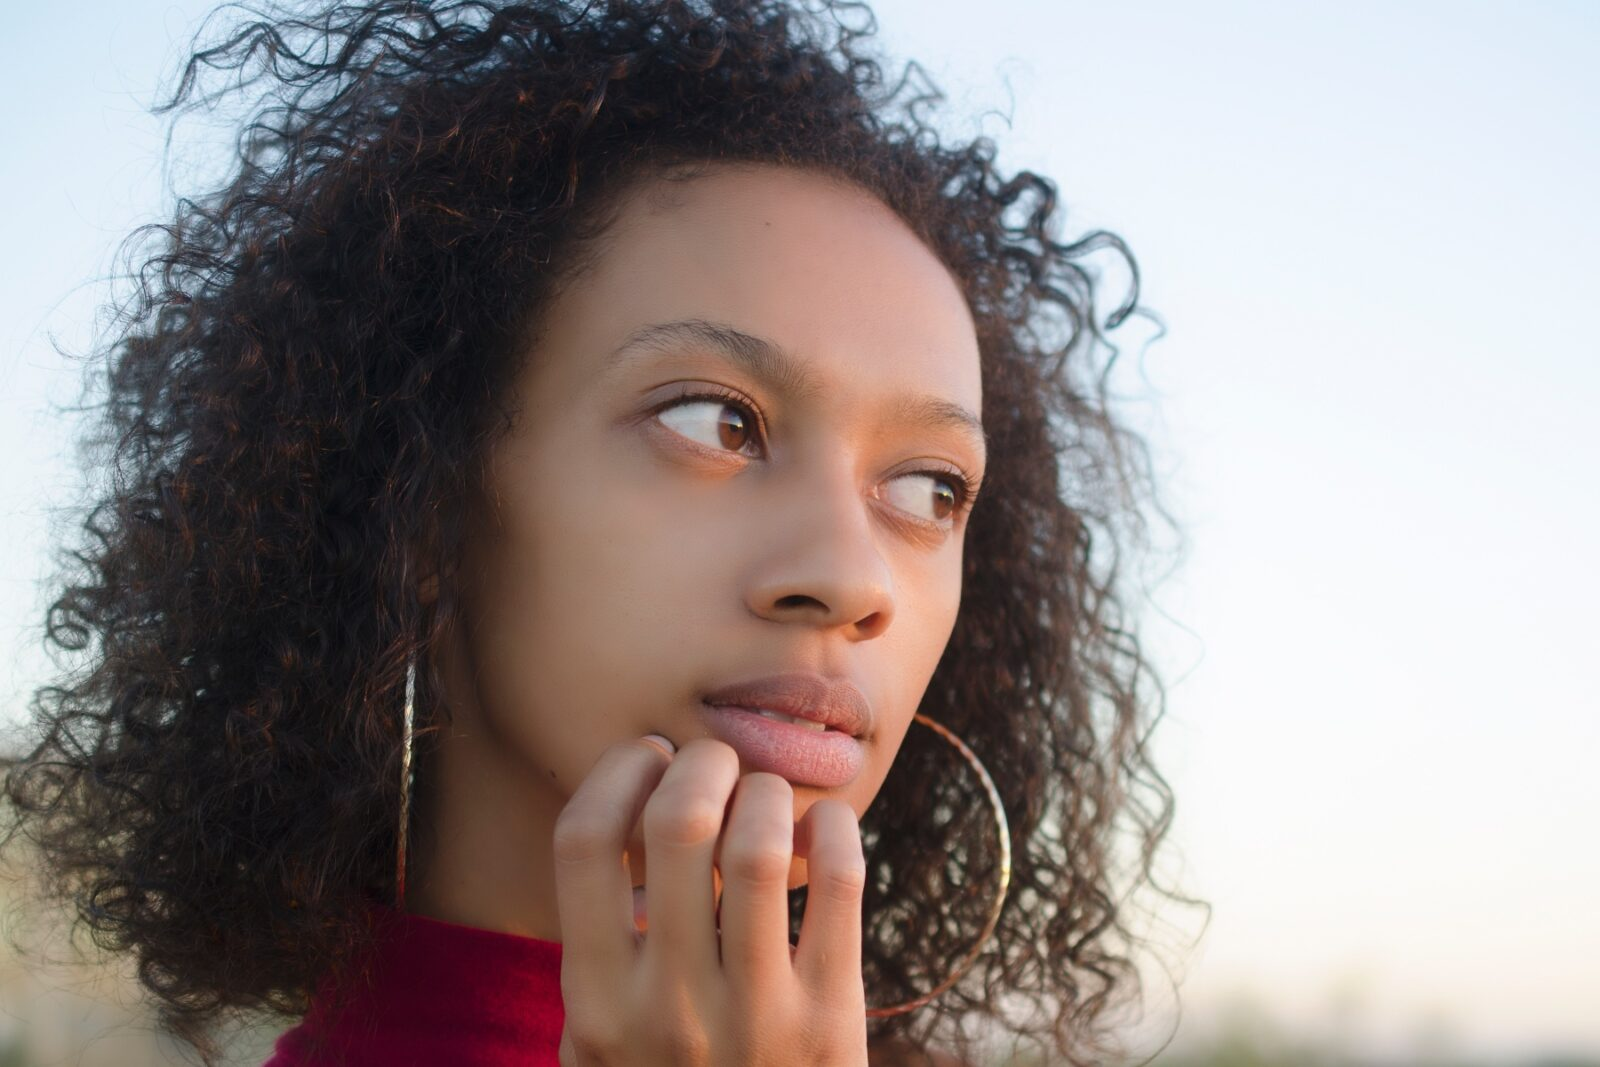 Young woman looking worried